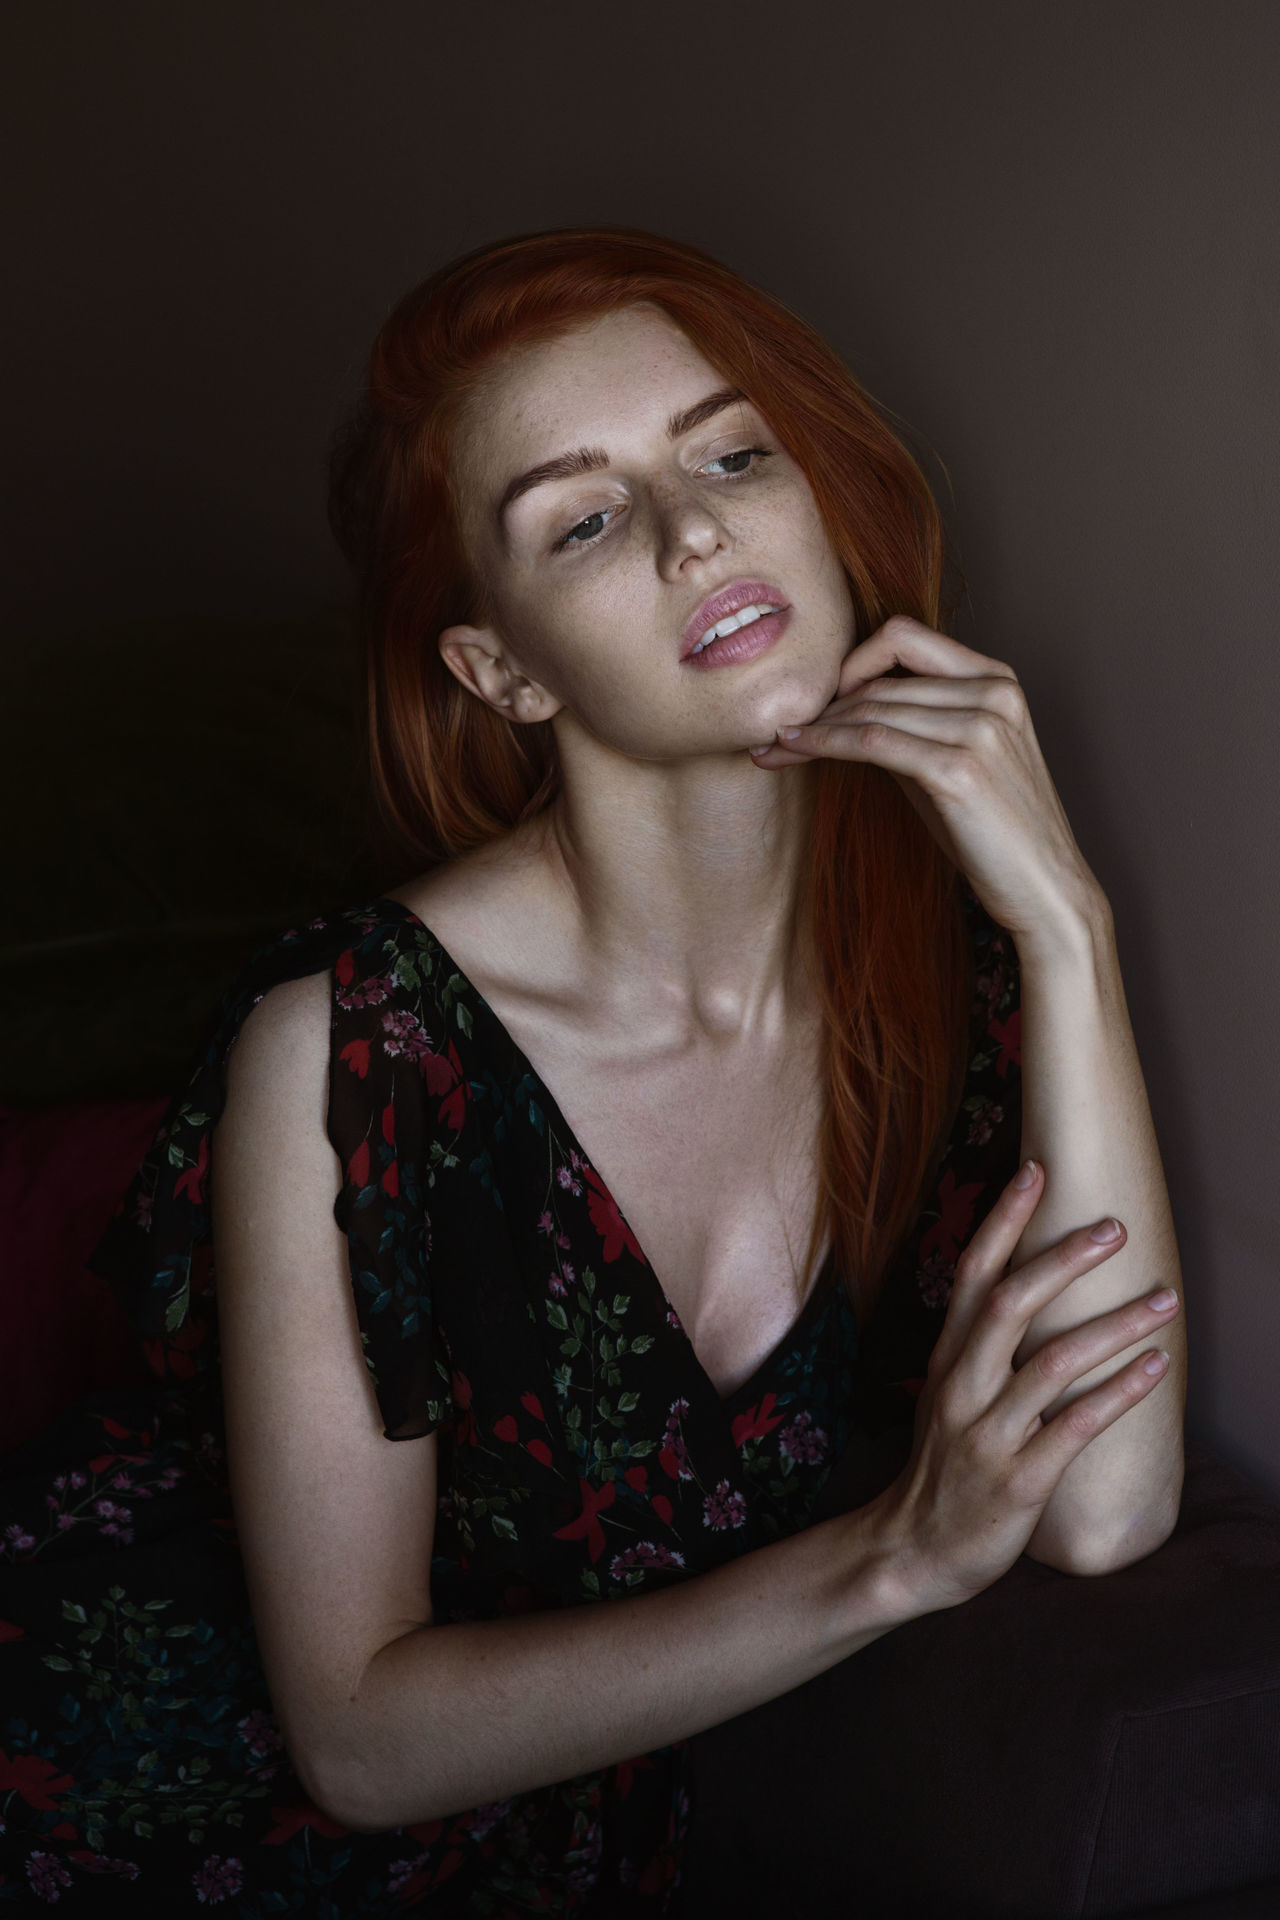 Follow me on Instagram. https://www.instagram.com/eglelaurinavice/ Adult Beautiful Woman Close-up Day Face Female Freckles Girl Hands Indoors  Lifestyles Natural Light Portrait One Person One Young Woman Only People Portrait Of A Woman Real People Redhead Skin Young Adult Young Women